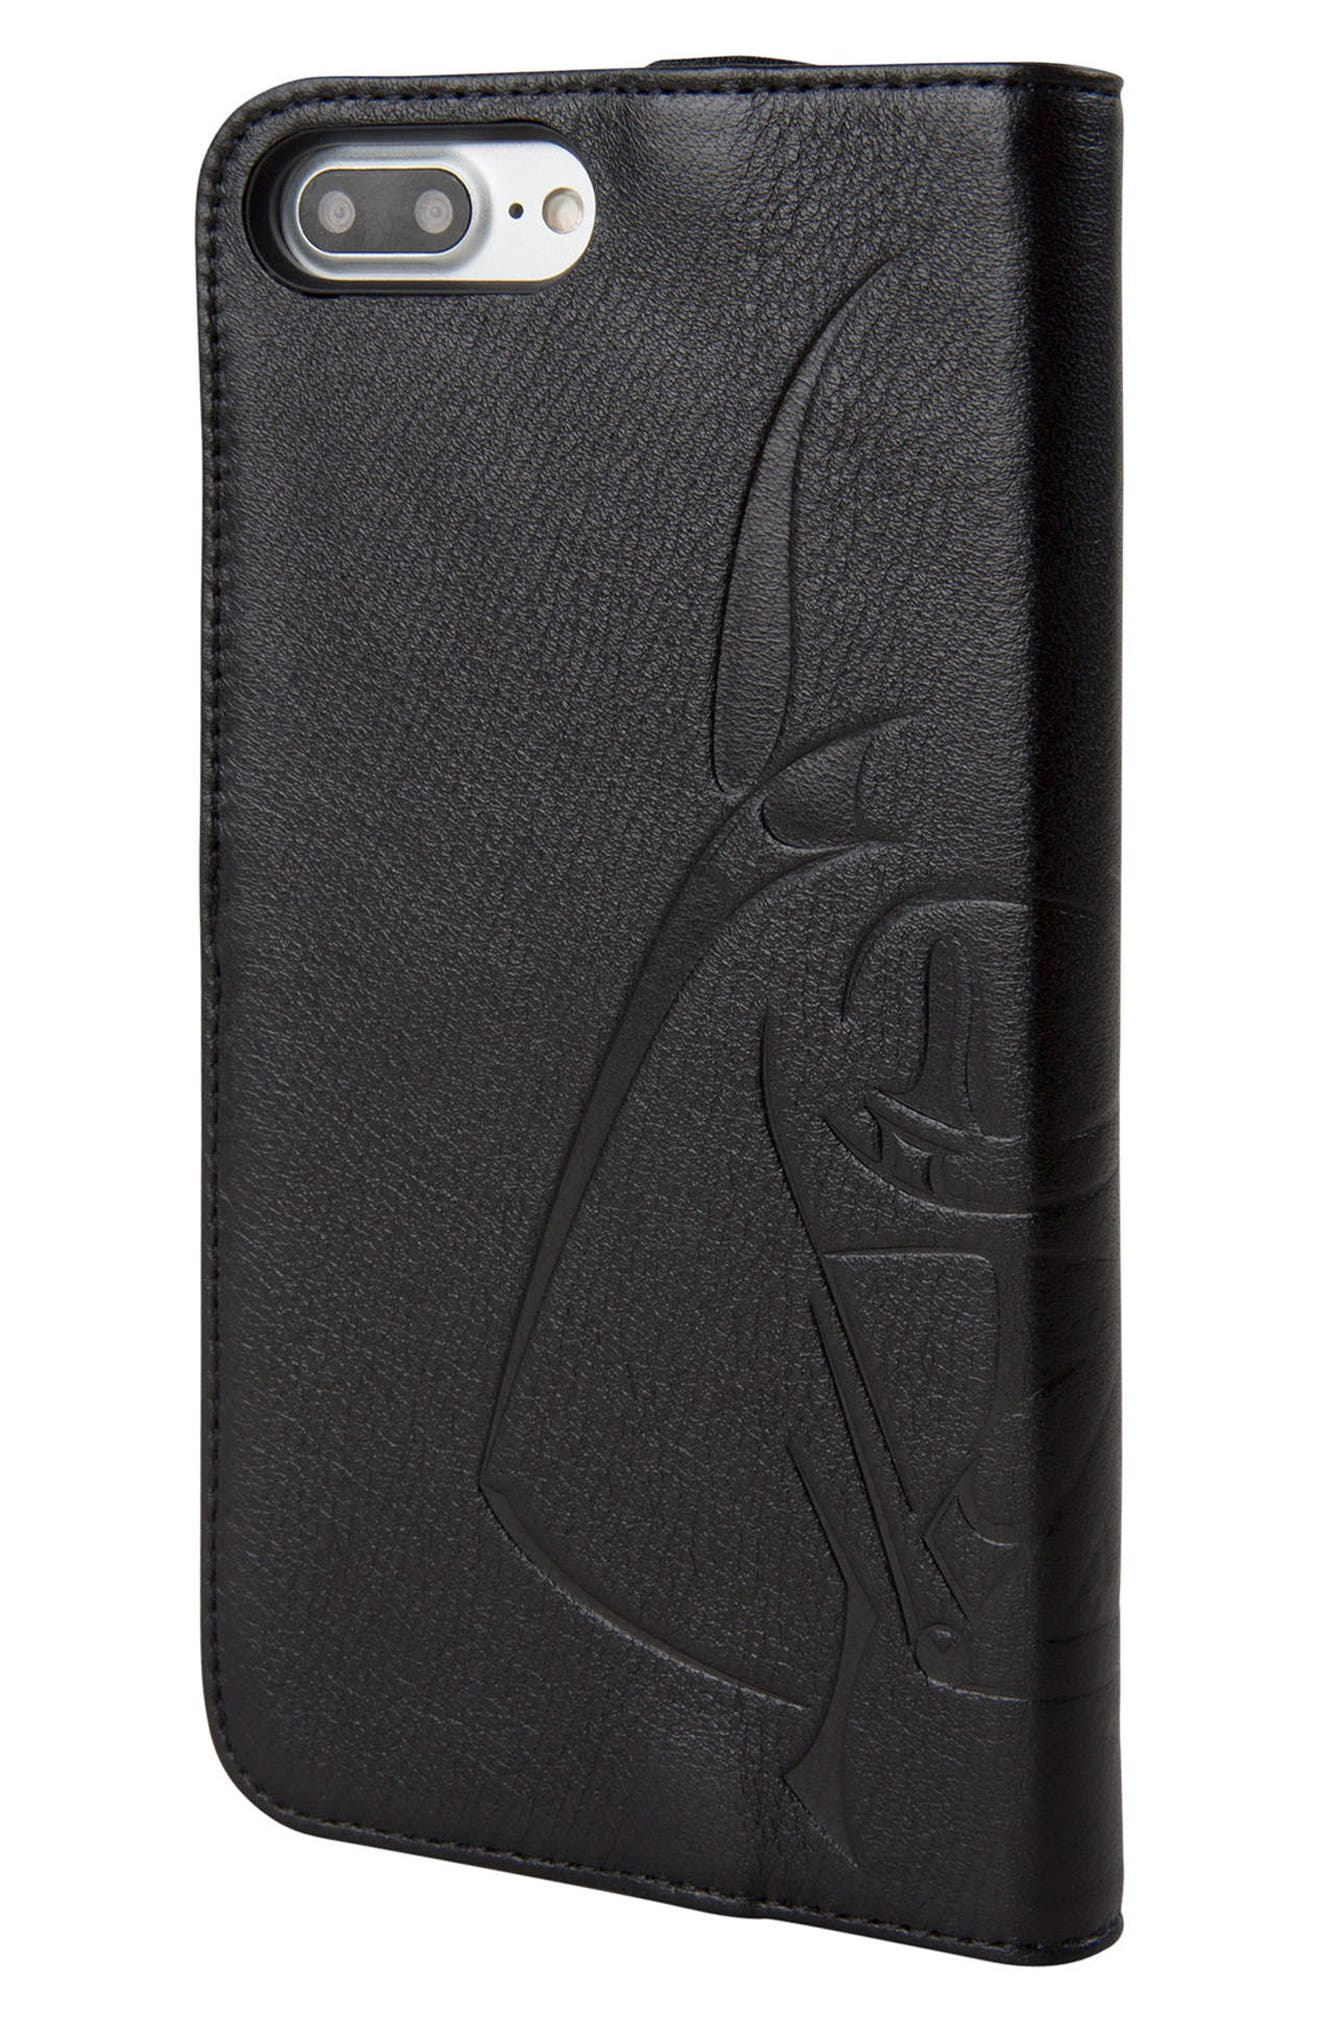 Darth Vader iPhone 8 Plus Wallet Case,                             Alternate thumbnail 3, color,                             Black